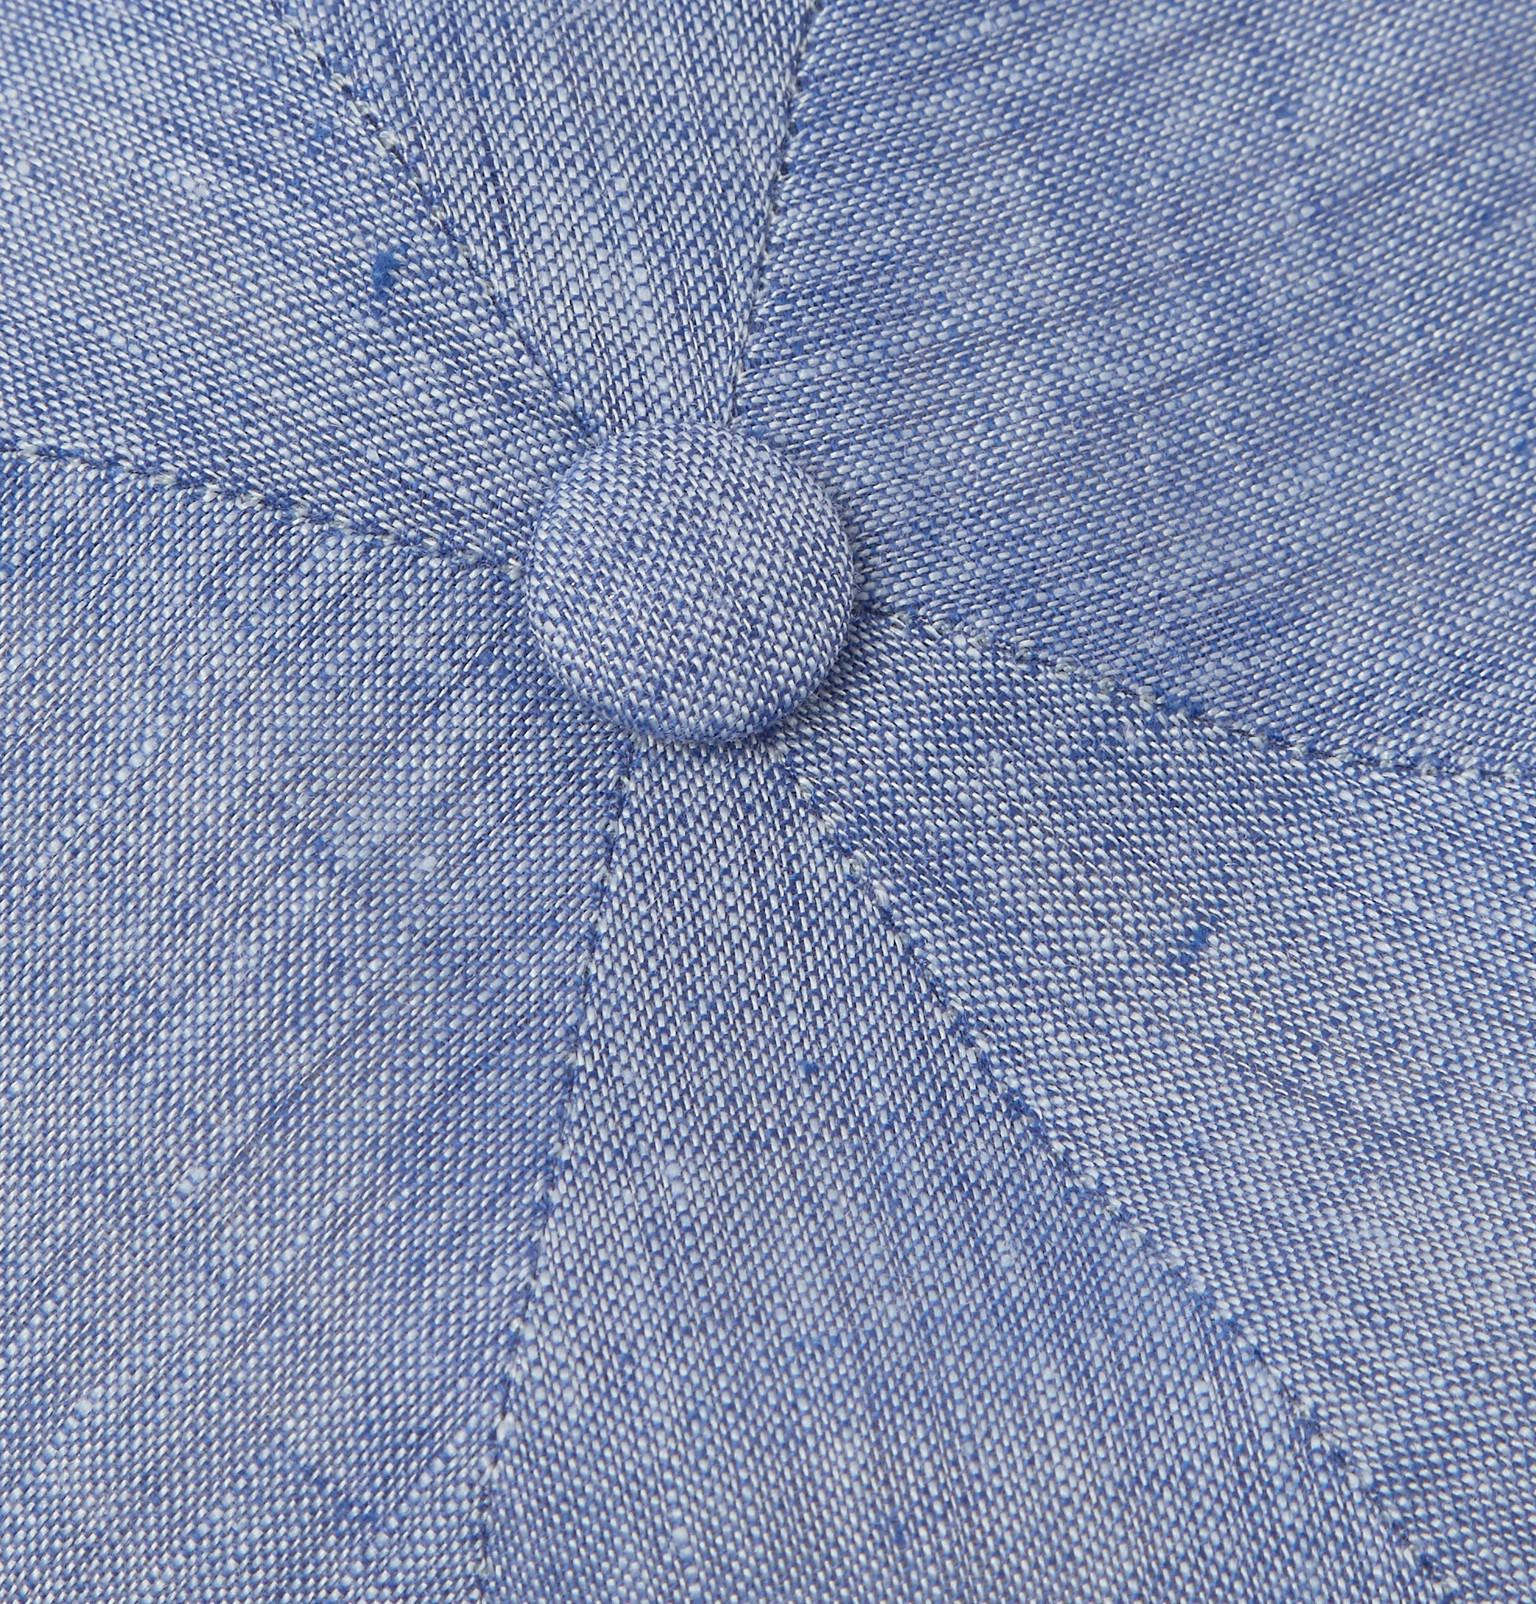 3fdce30845a Lyst - Lock   Co. Reverb Linen-chambray Flat Cap in Blue for Men